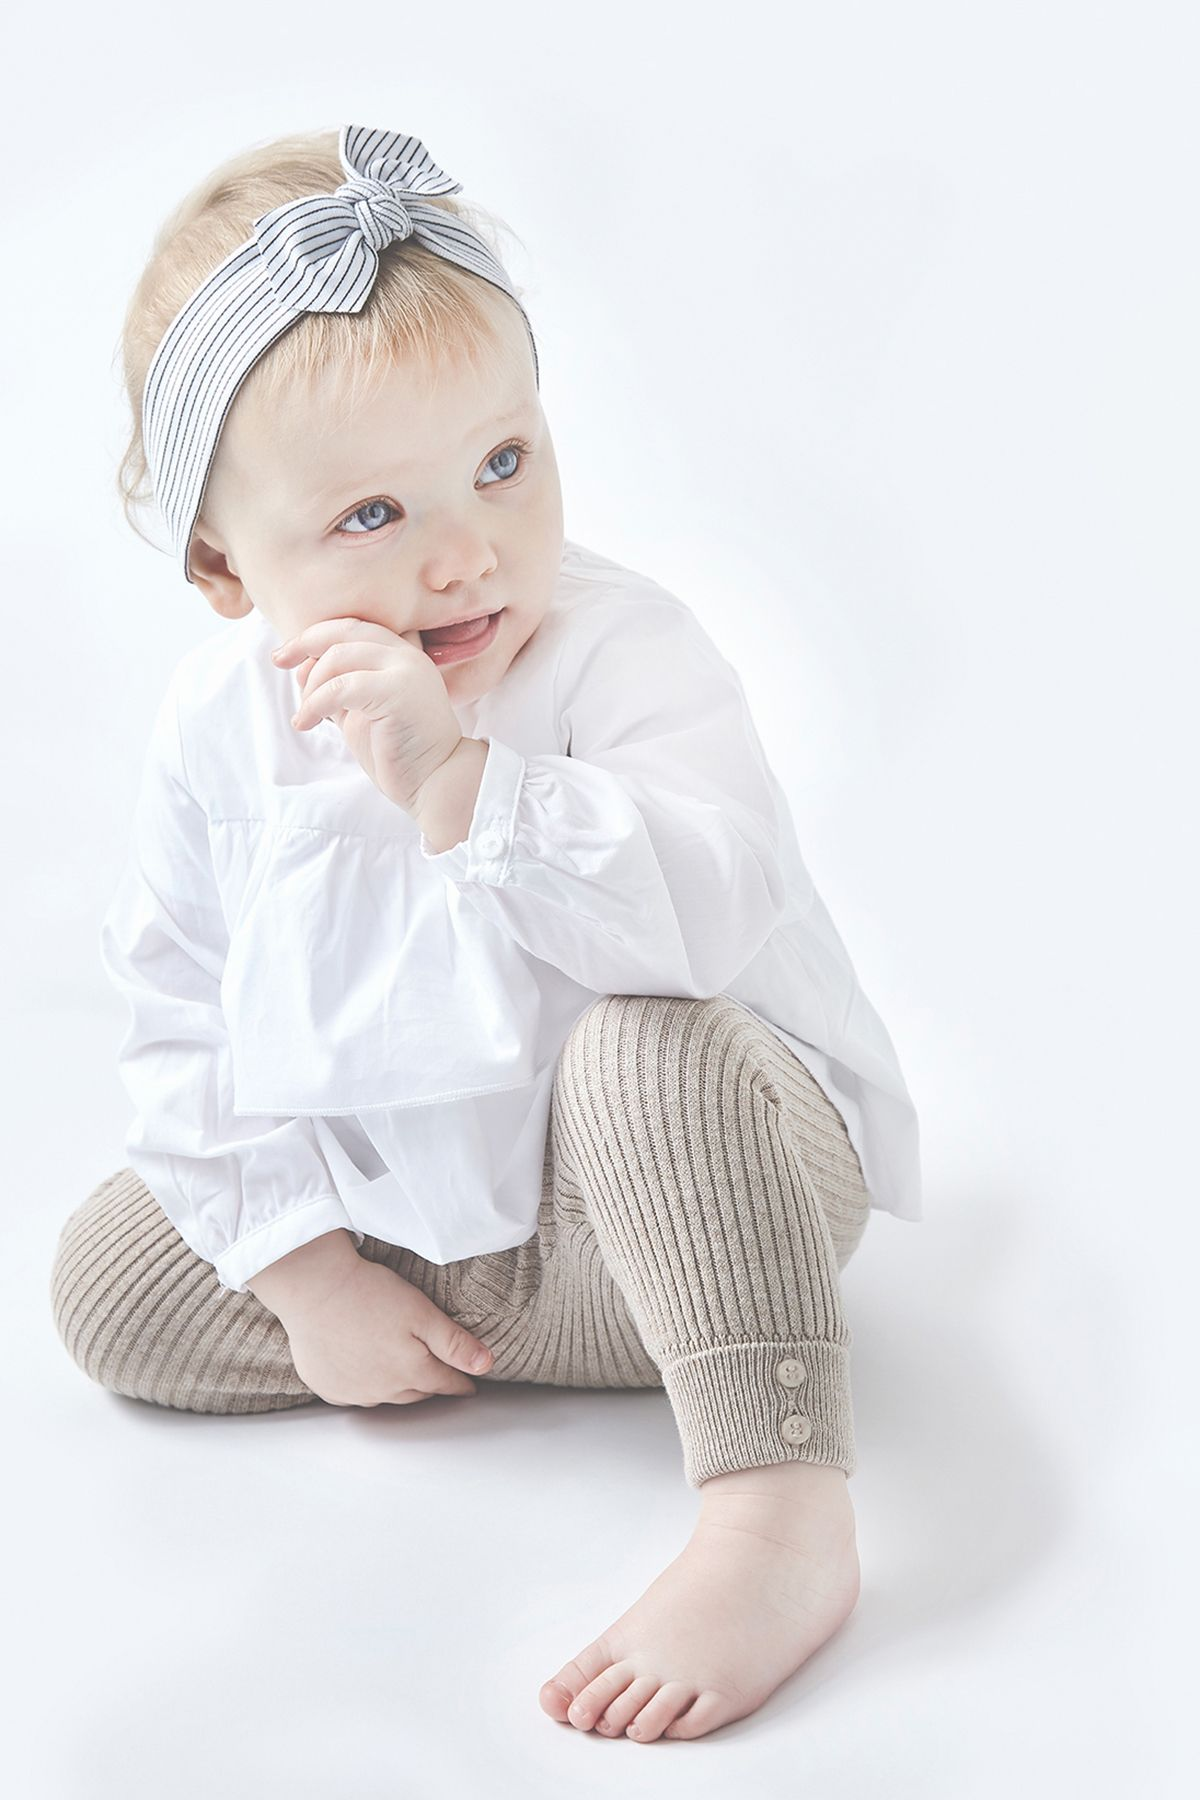 Set her apart from all the rest with our 100% Organic Stretch Cotton Baby  Headbands 08d3bbad16f